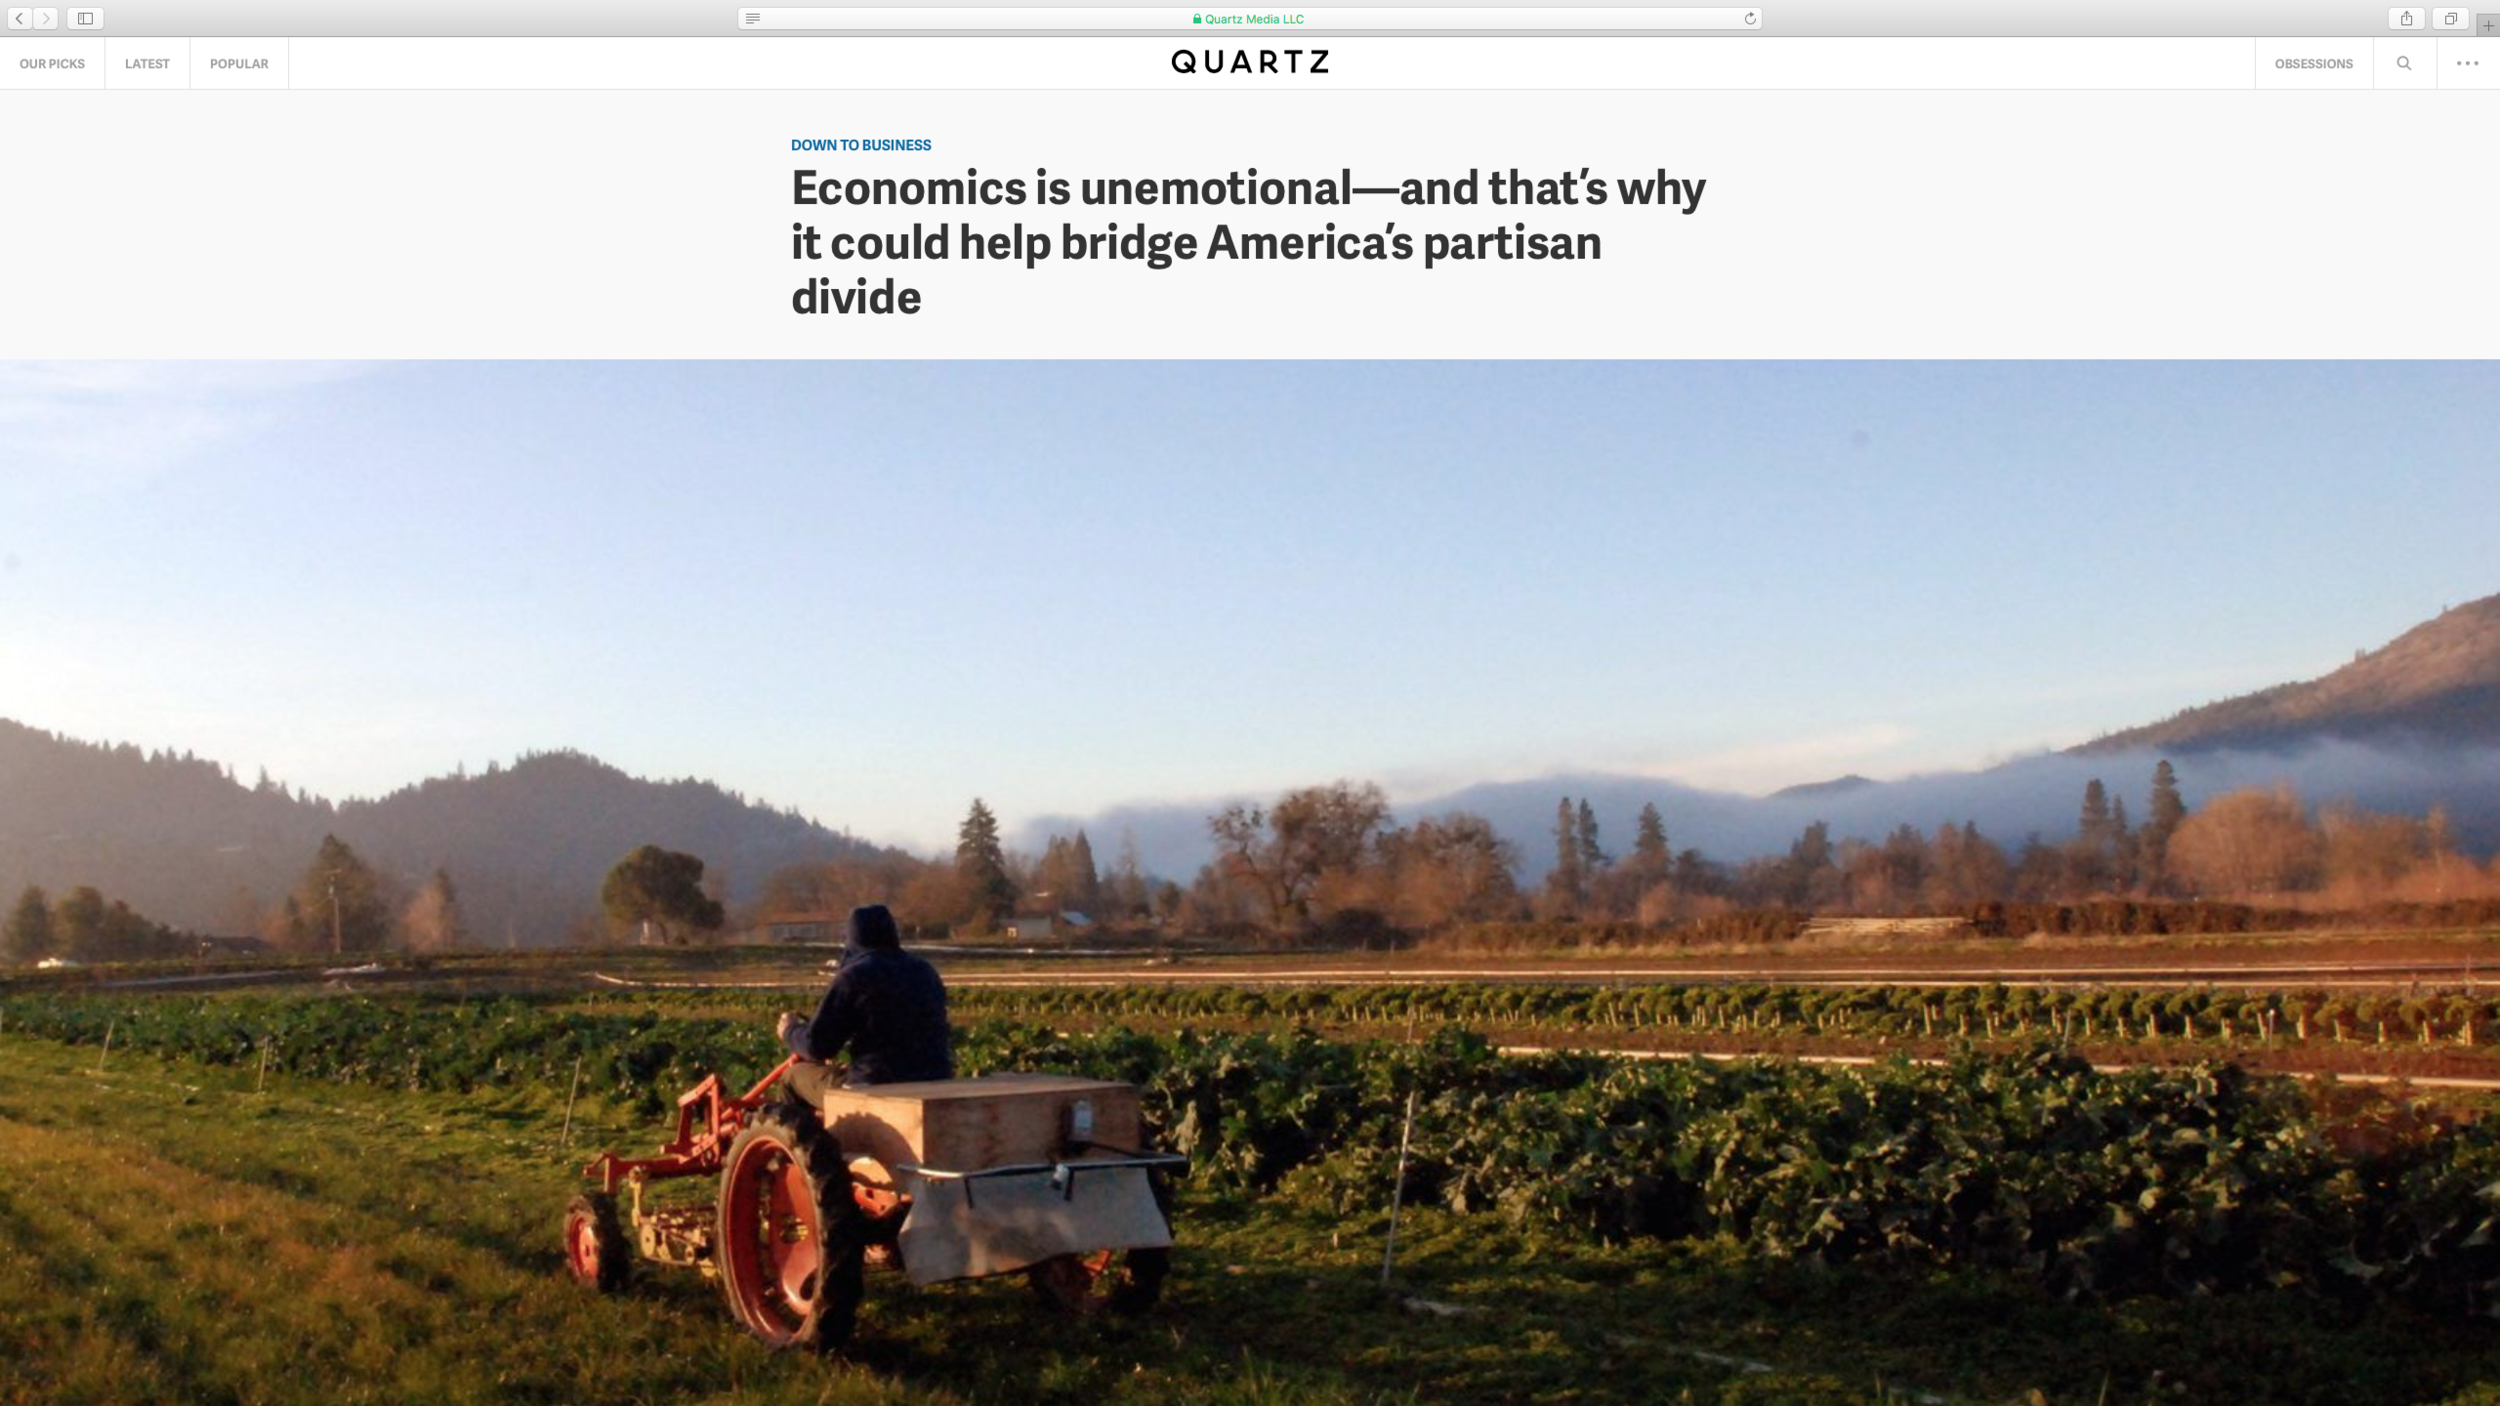 """Link to """"Down to Business:Economics is unemotional—and that's why it could help bridge America's partisan divide"""" on Quartz"""